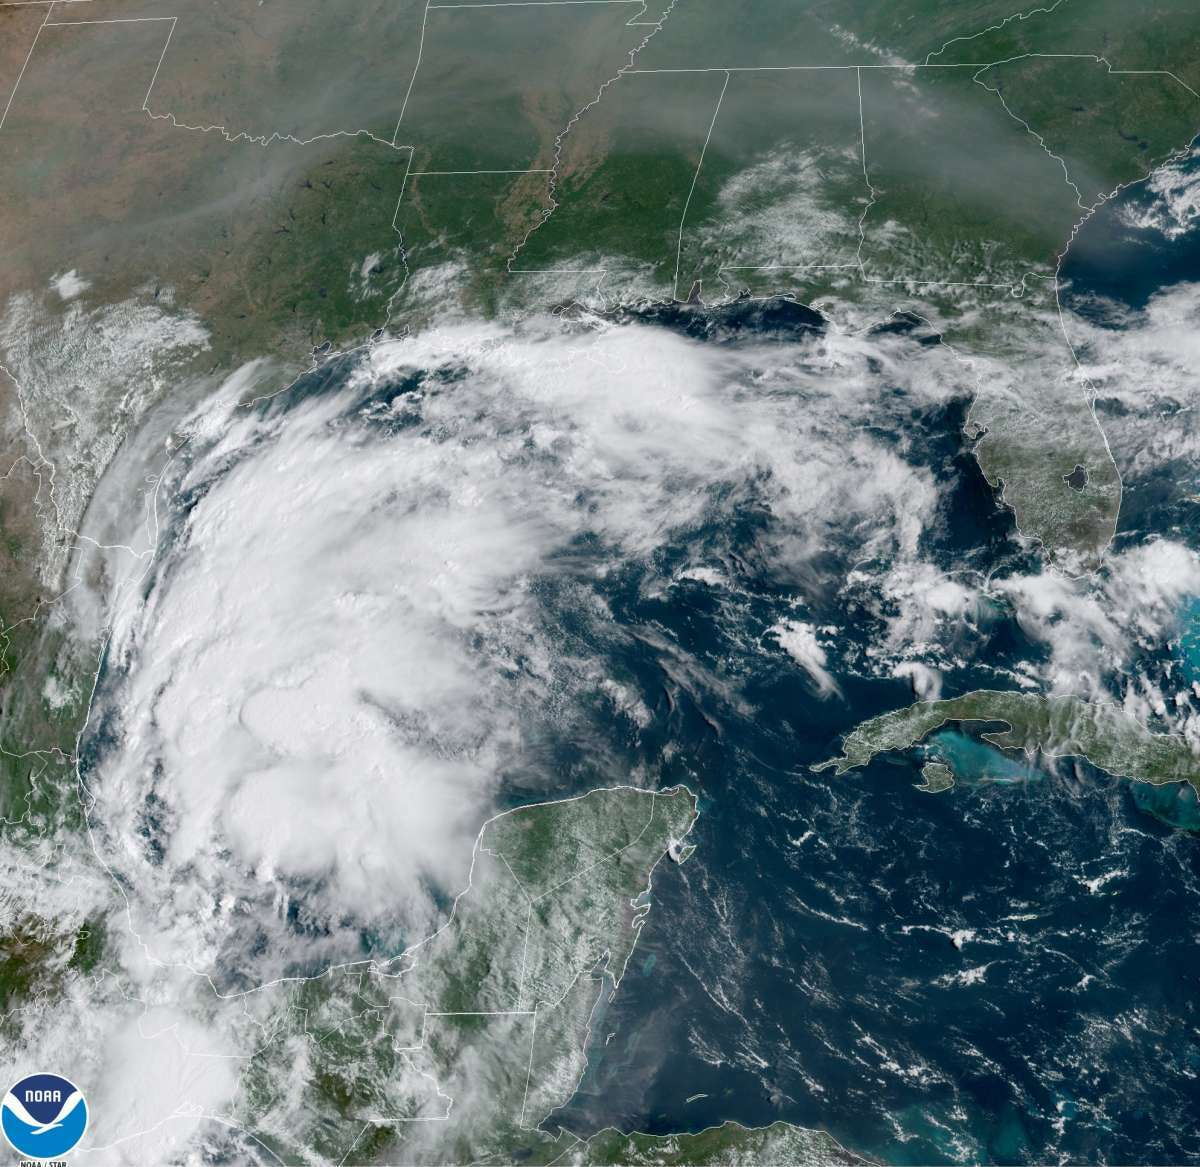 This satellite image provided by NOAA shows Tropical Storm Nicholas in the Gulf of Mexico on Sunday, Sept. 12, 2021. Tropical storm warnings have been issued for coastal Texas and the northeast coast of Mexico. Nicholas is expected to produce storm total rainfall of 5 to 10 inches, with isolated maximum amounts of 15 inches, across portions of coastal Texas into southwest Louisiana Sunday, Sept. 12 through midweek. (NOAA via AP)AP